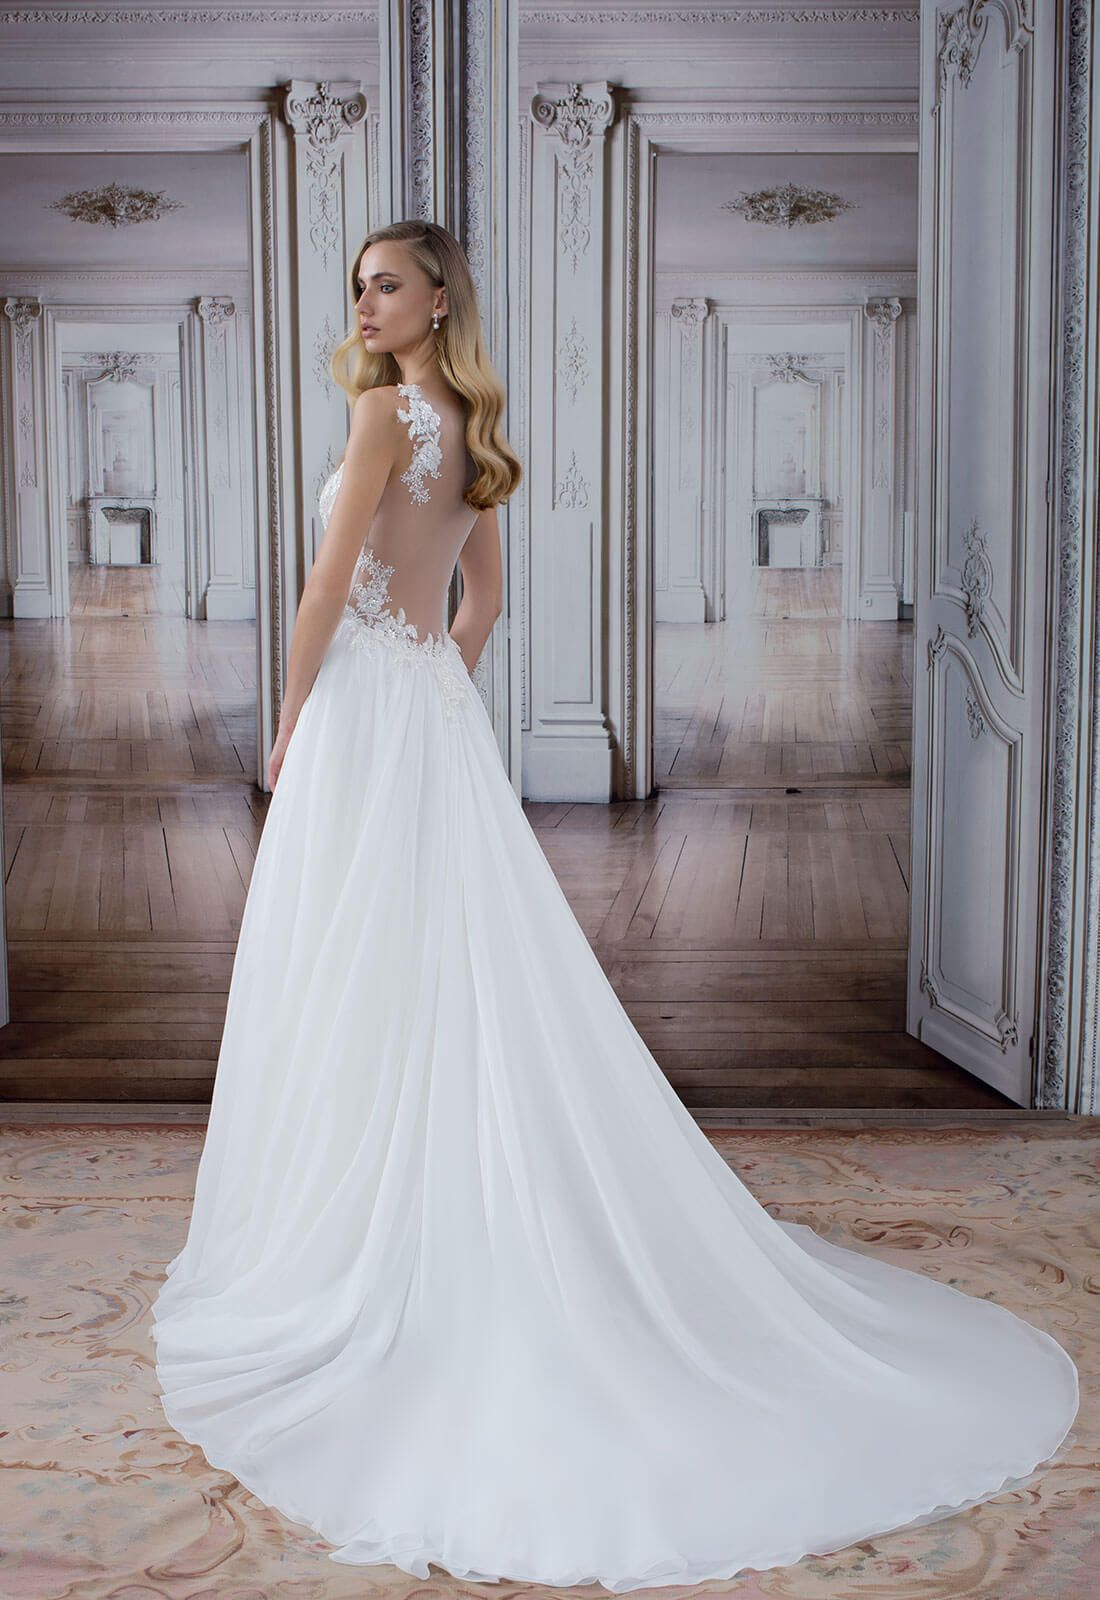 Style No 14499 Absolutely Adore This Dress From Say Yes To The Dress Episode 5 Of Season 15 M Wedding Dresses Wedding Dress Search Plus Size Wedding Gowns